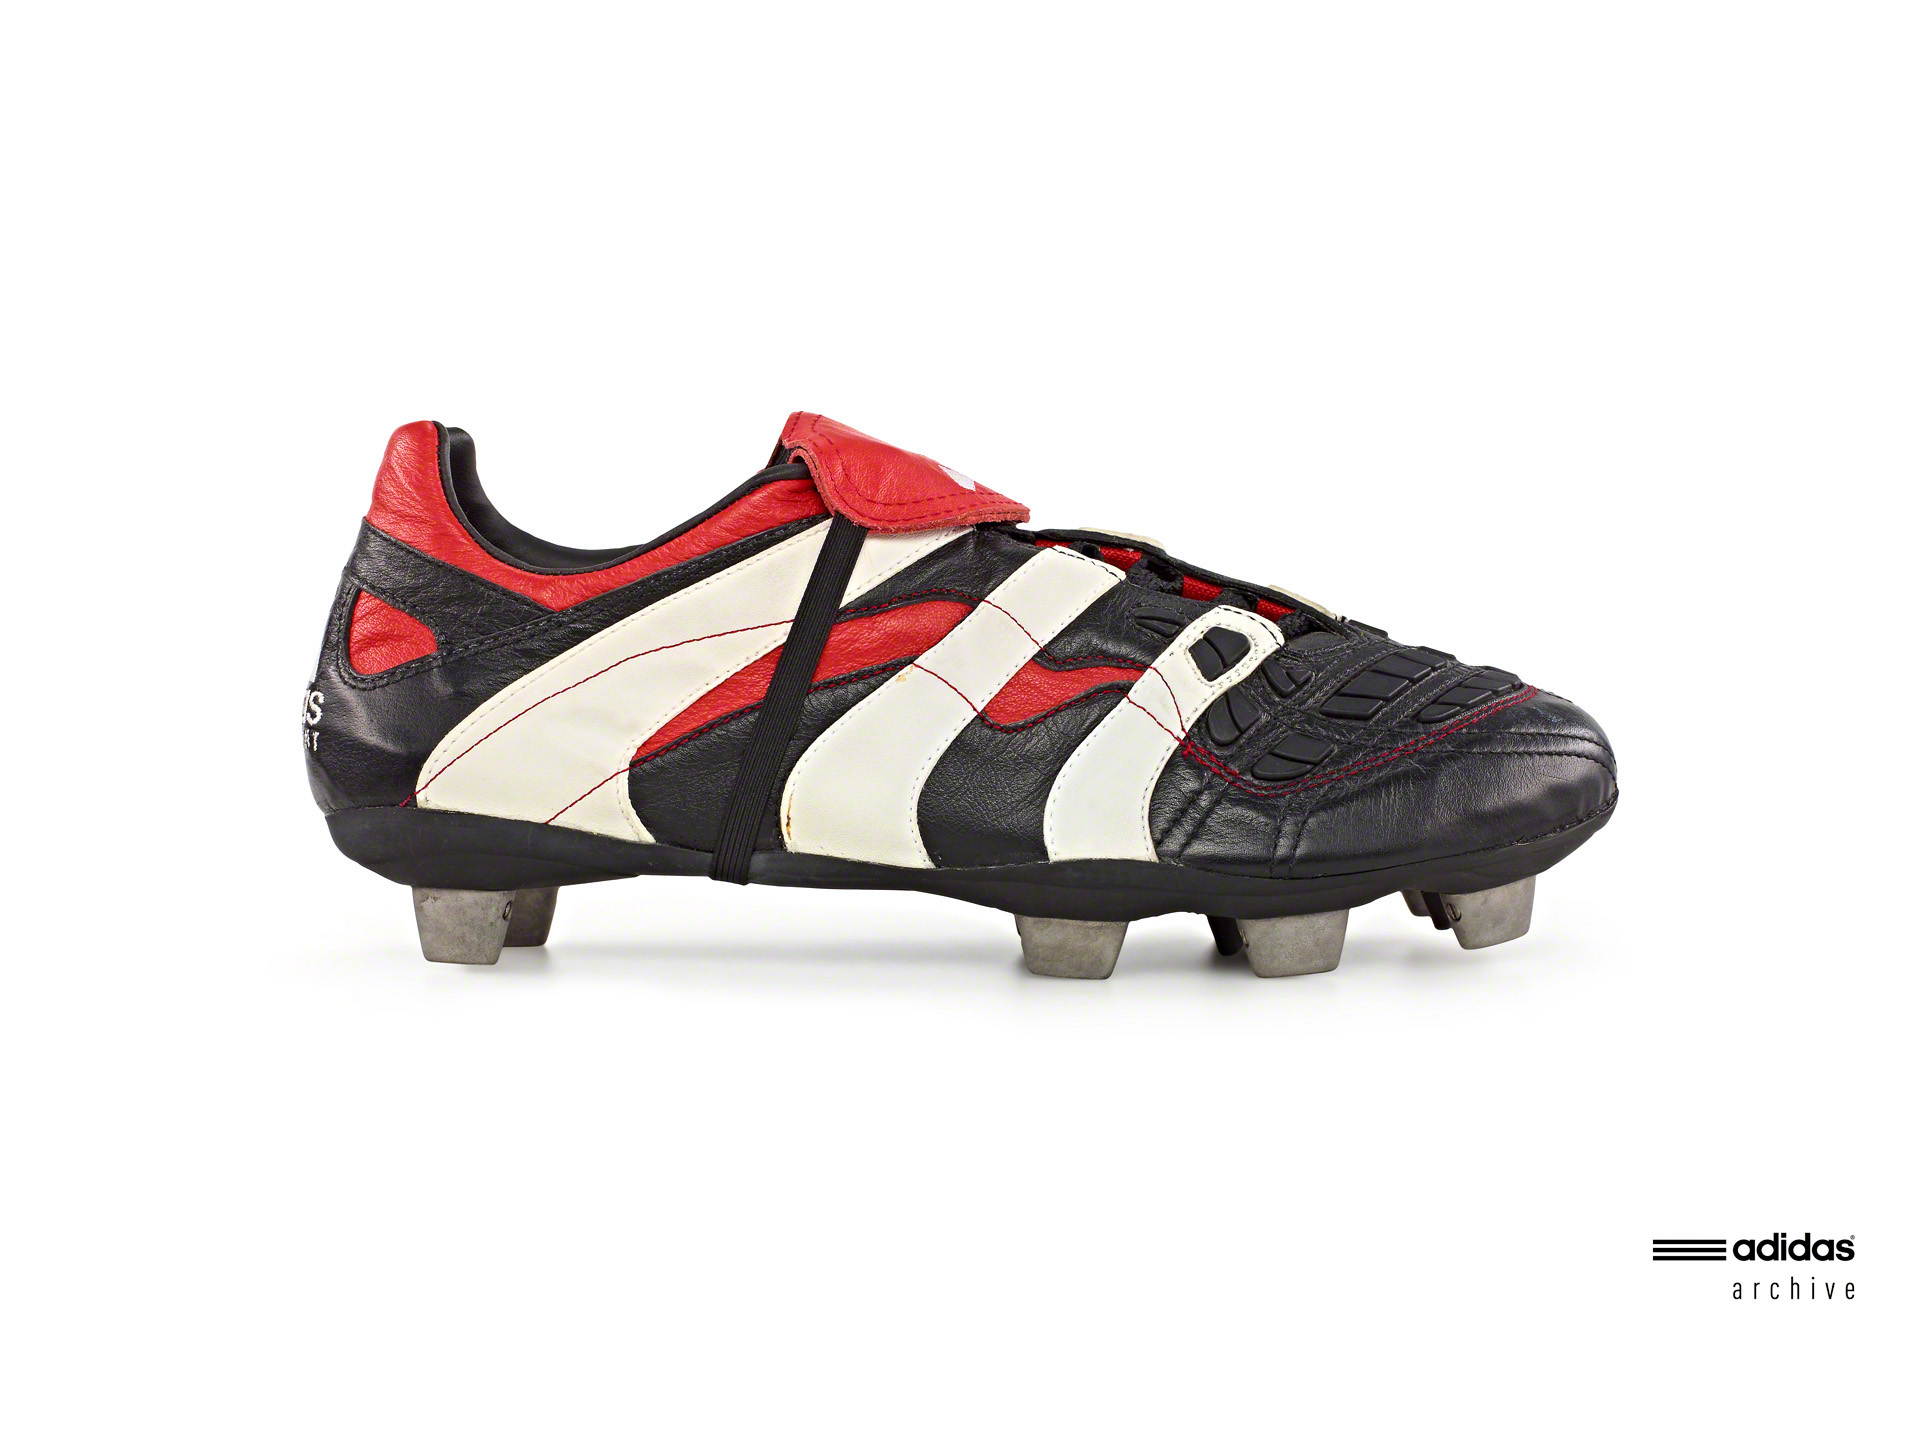 new products 3132a 863e4 Adidas Predator Accelerator